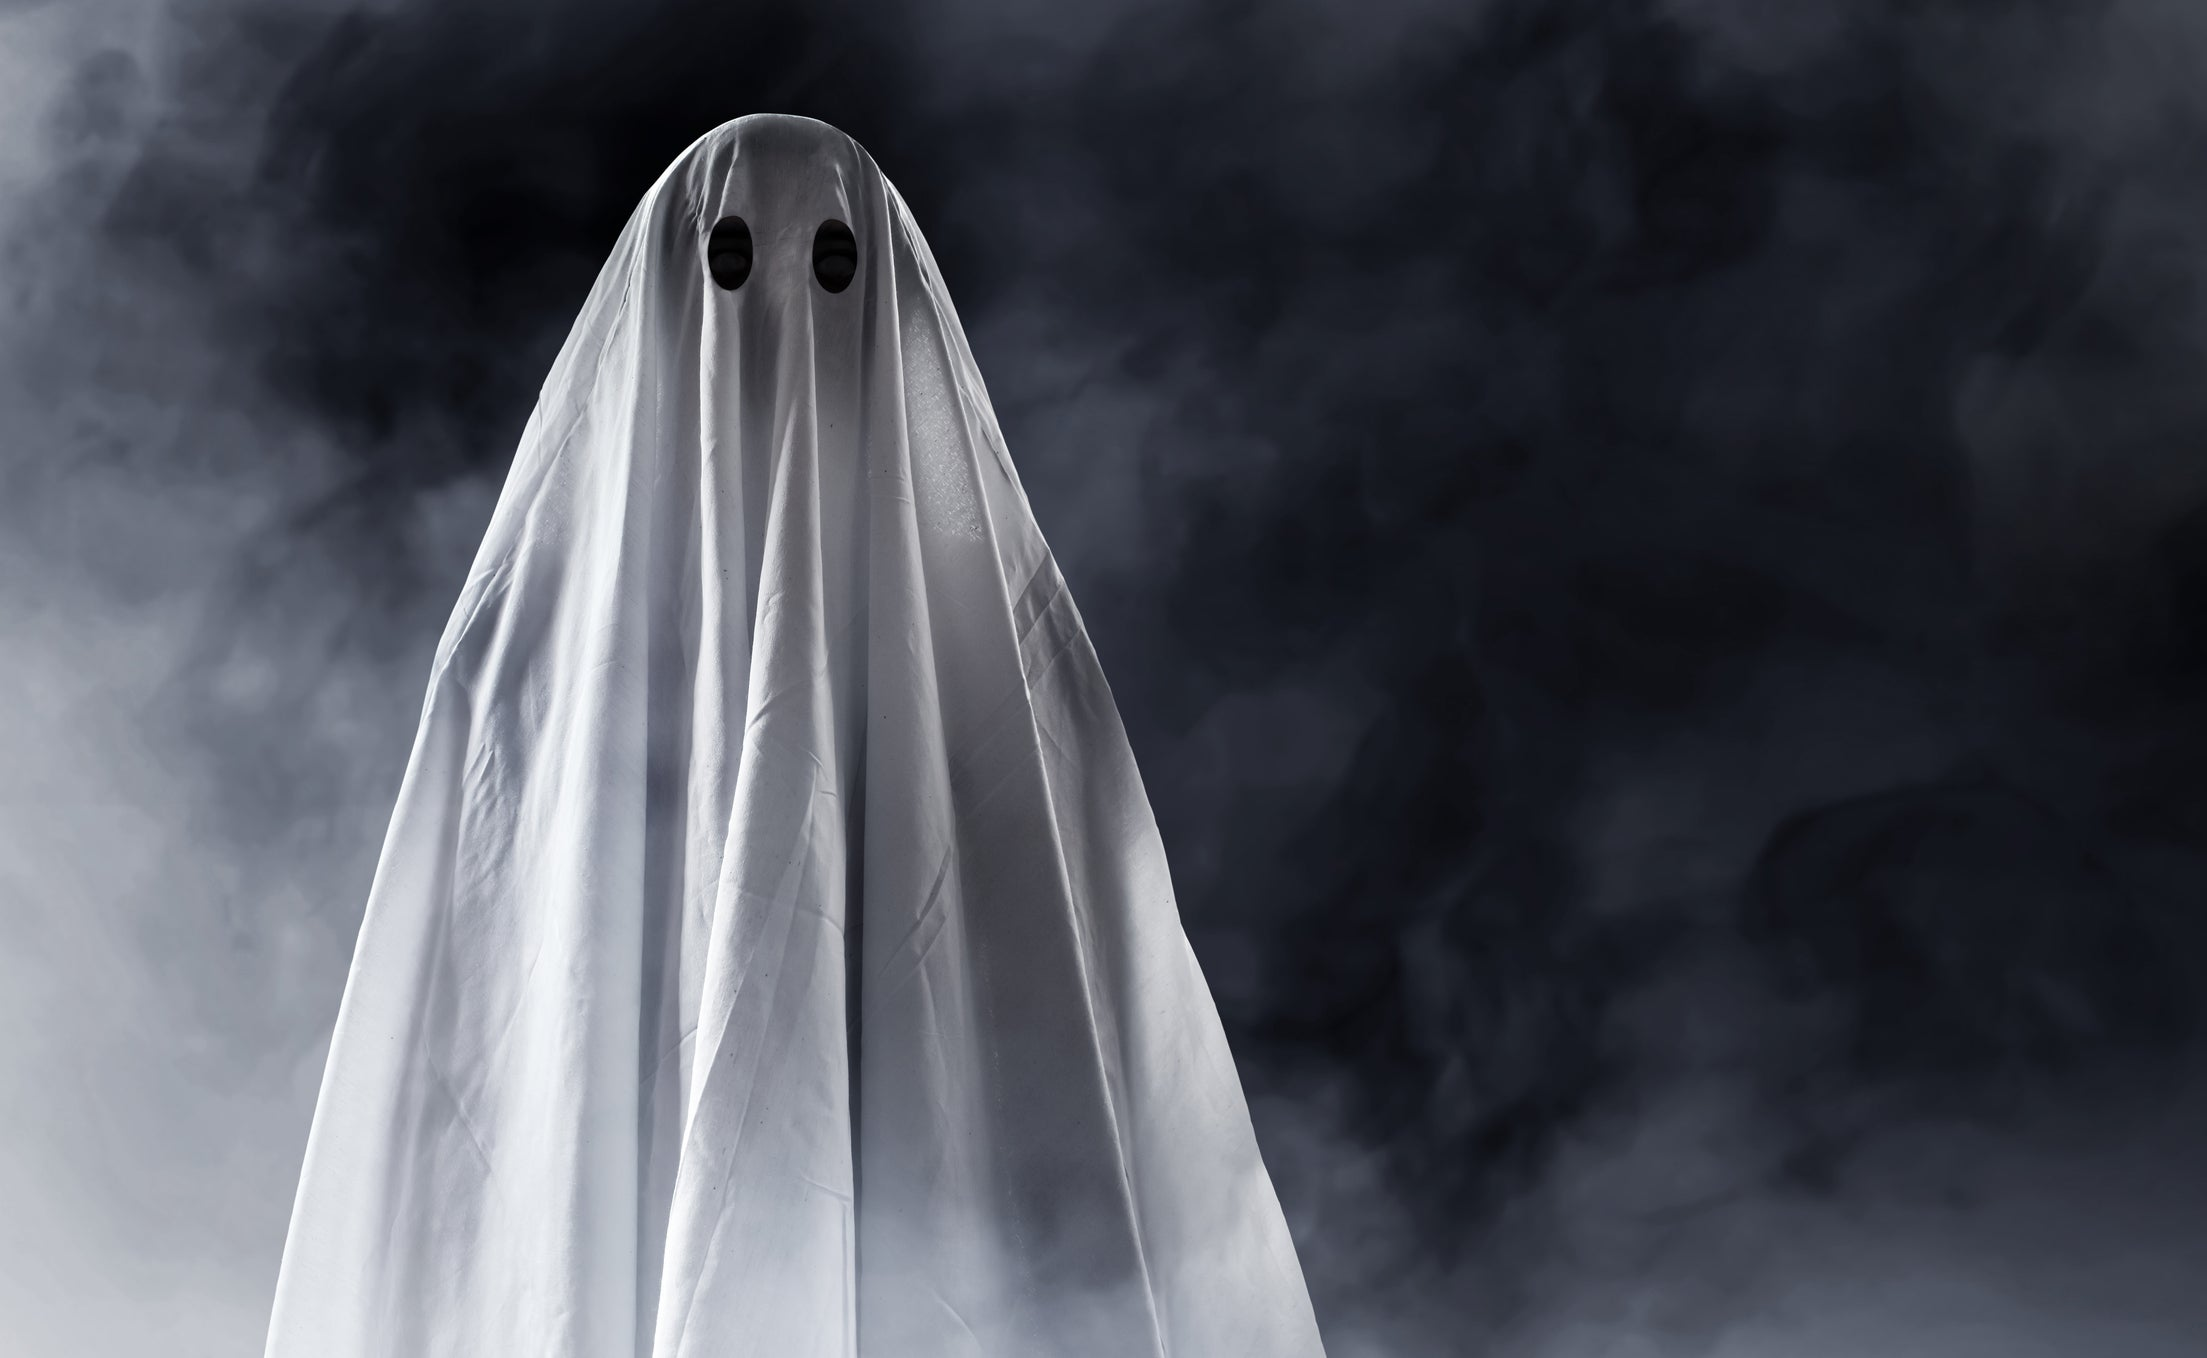 person wearing a sheet as a ghost costume for Halloween.